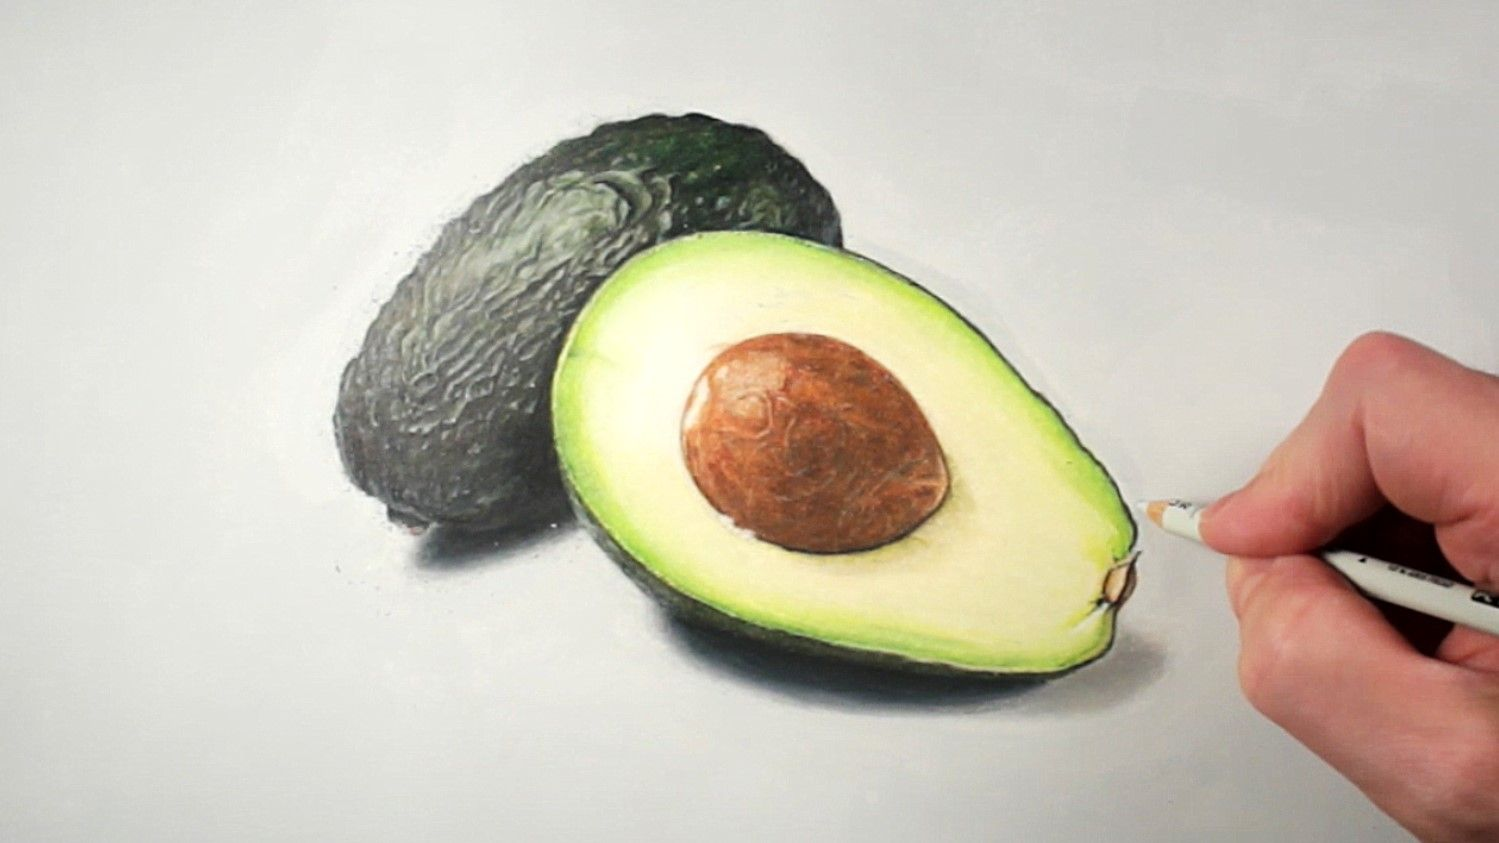 Ripe avocado drawing with colored pencils. Realistic